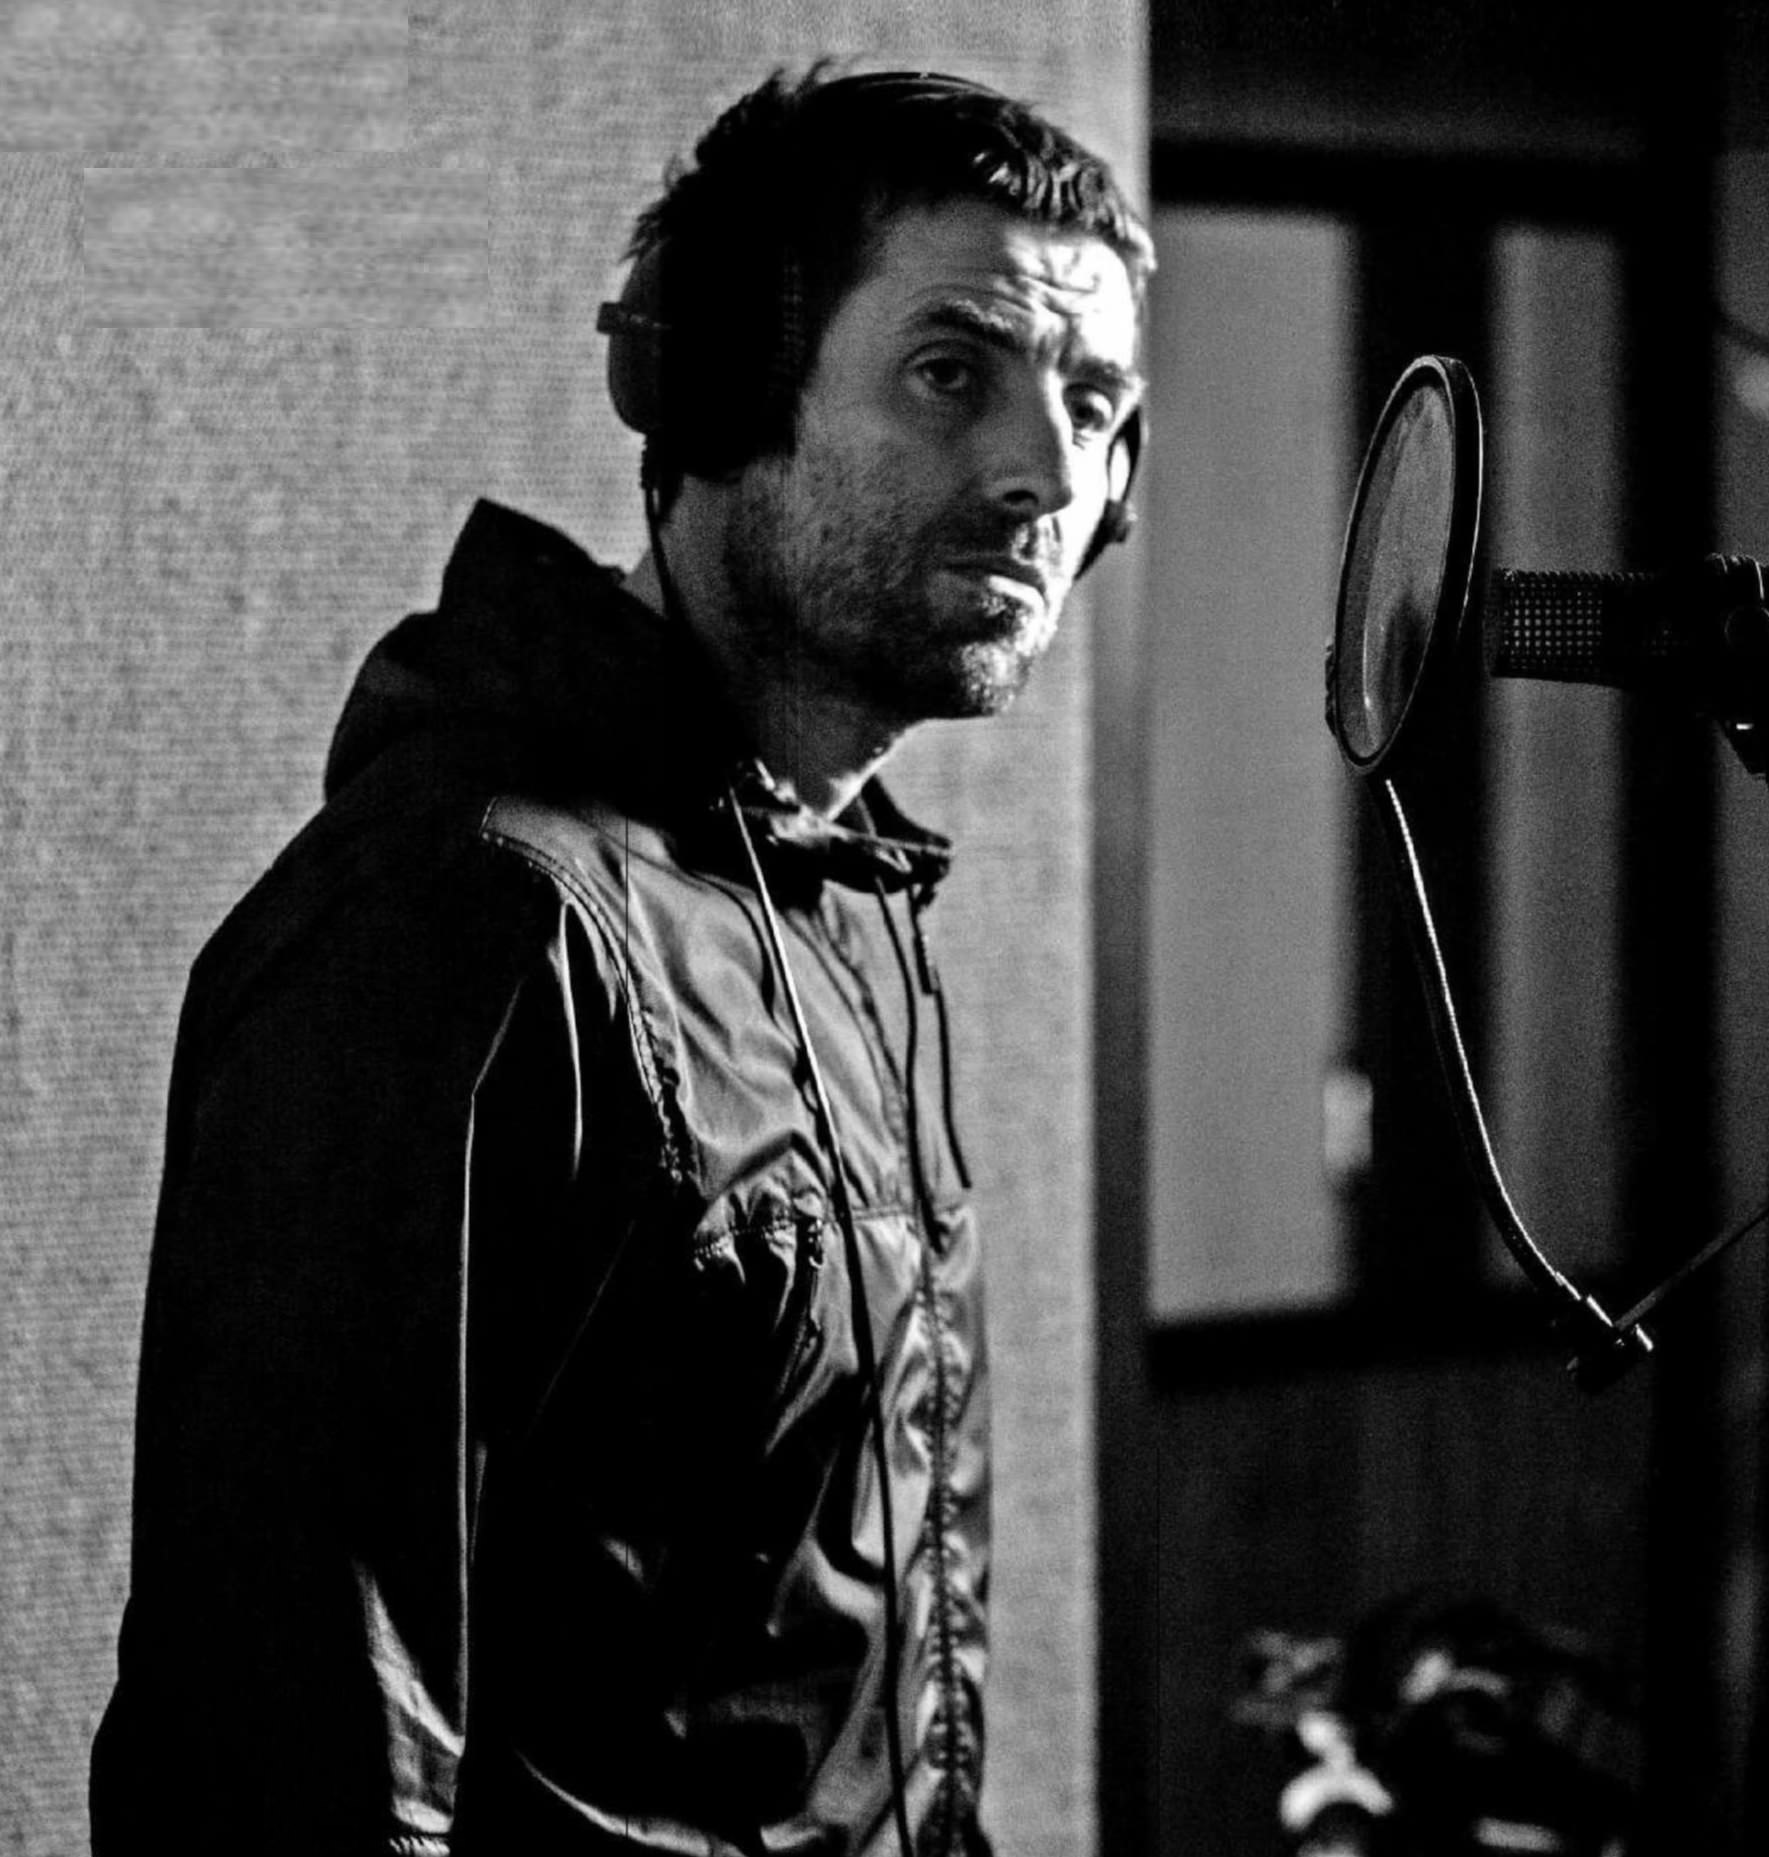 Liam Gallagher: The Big Payback